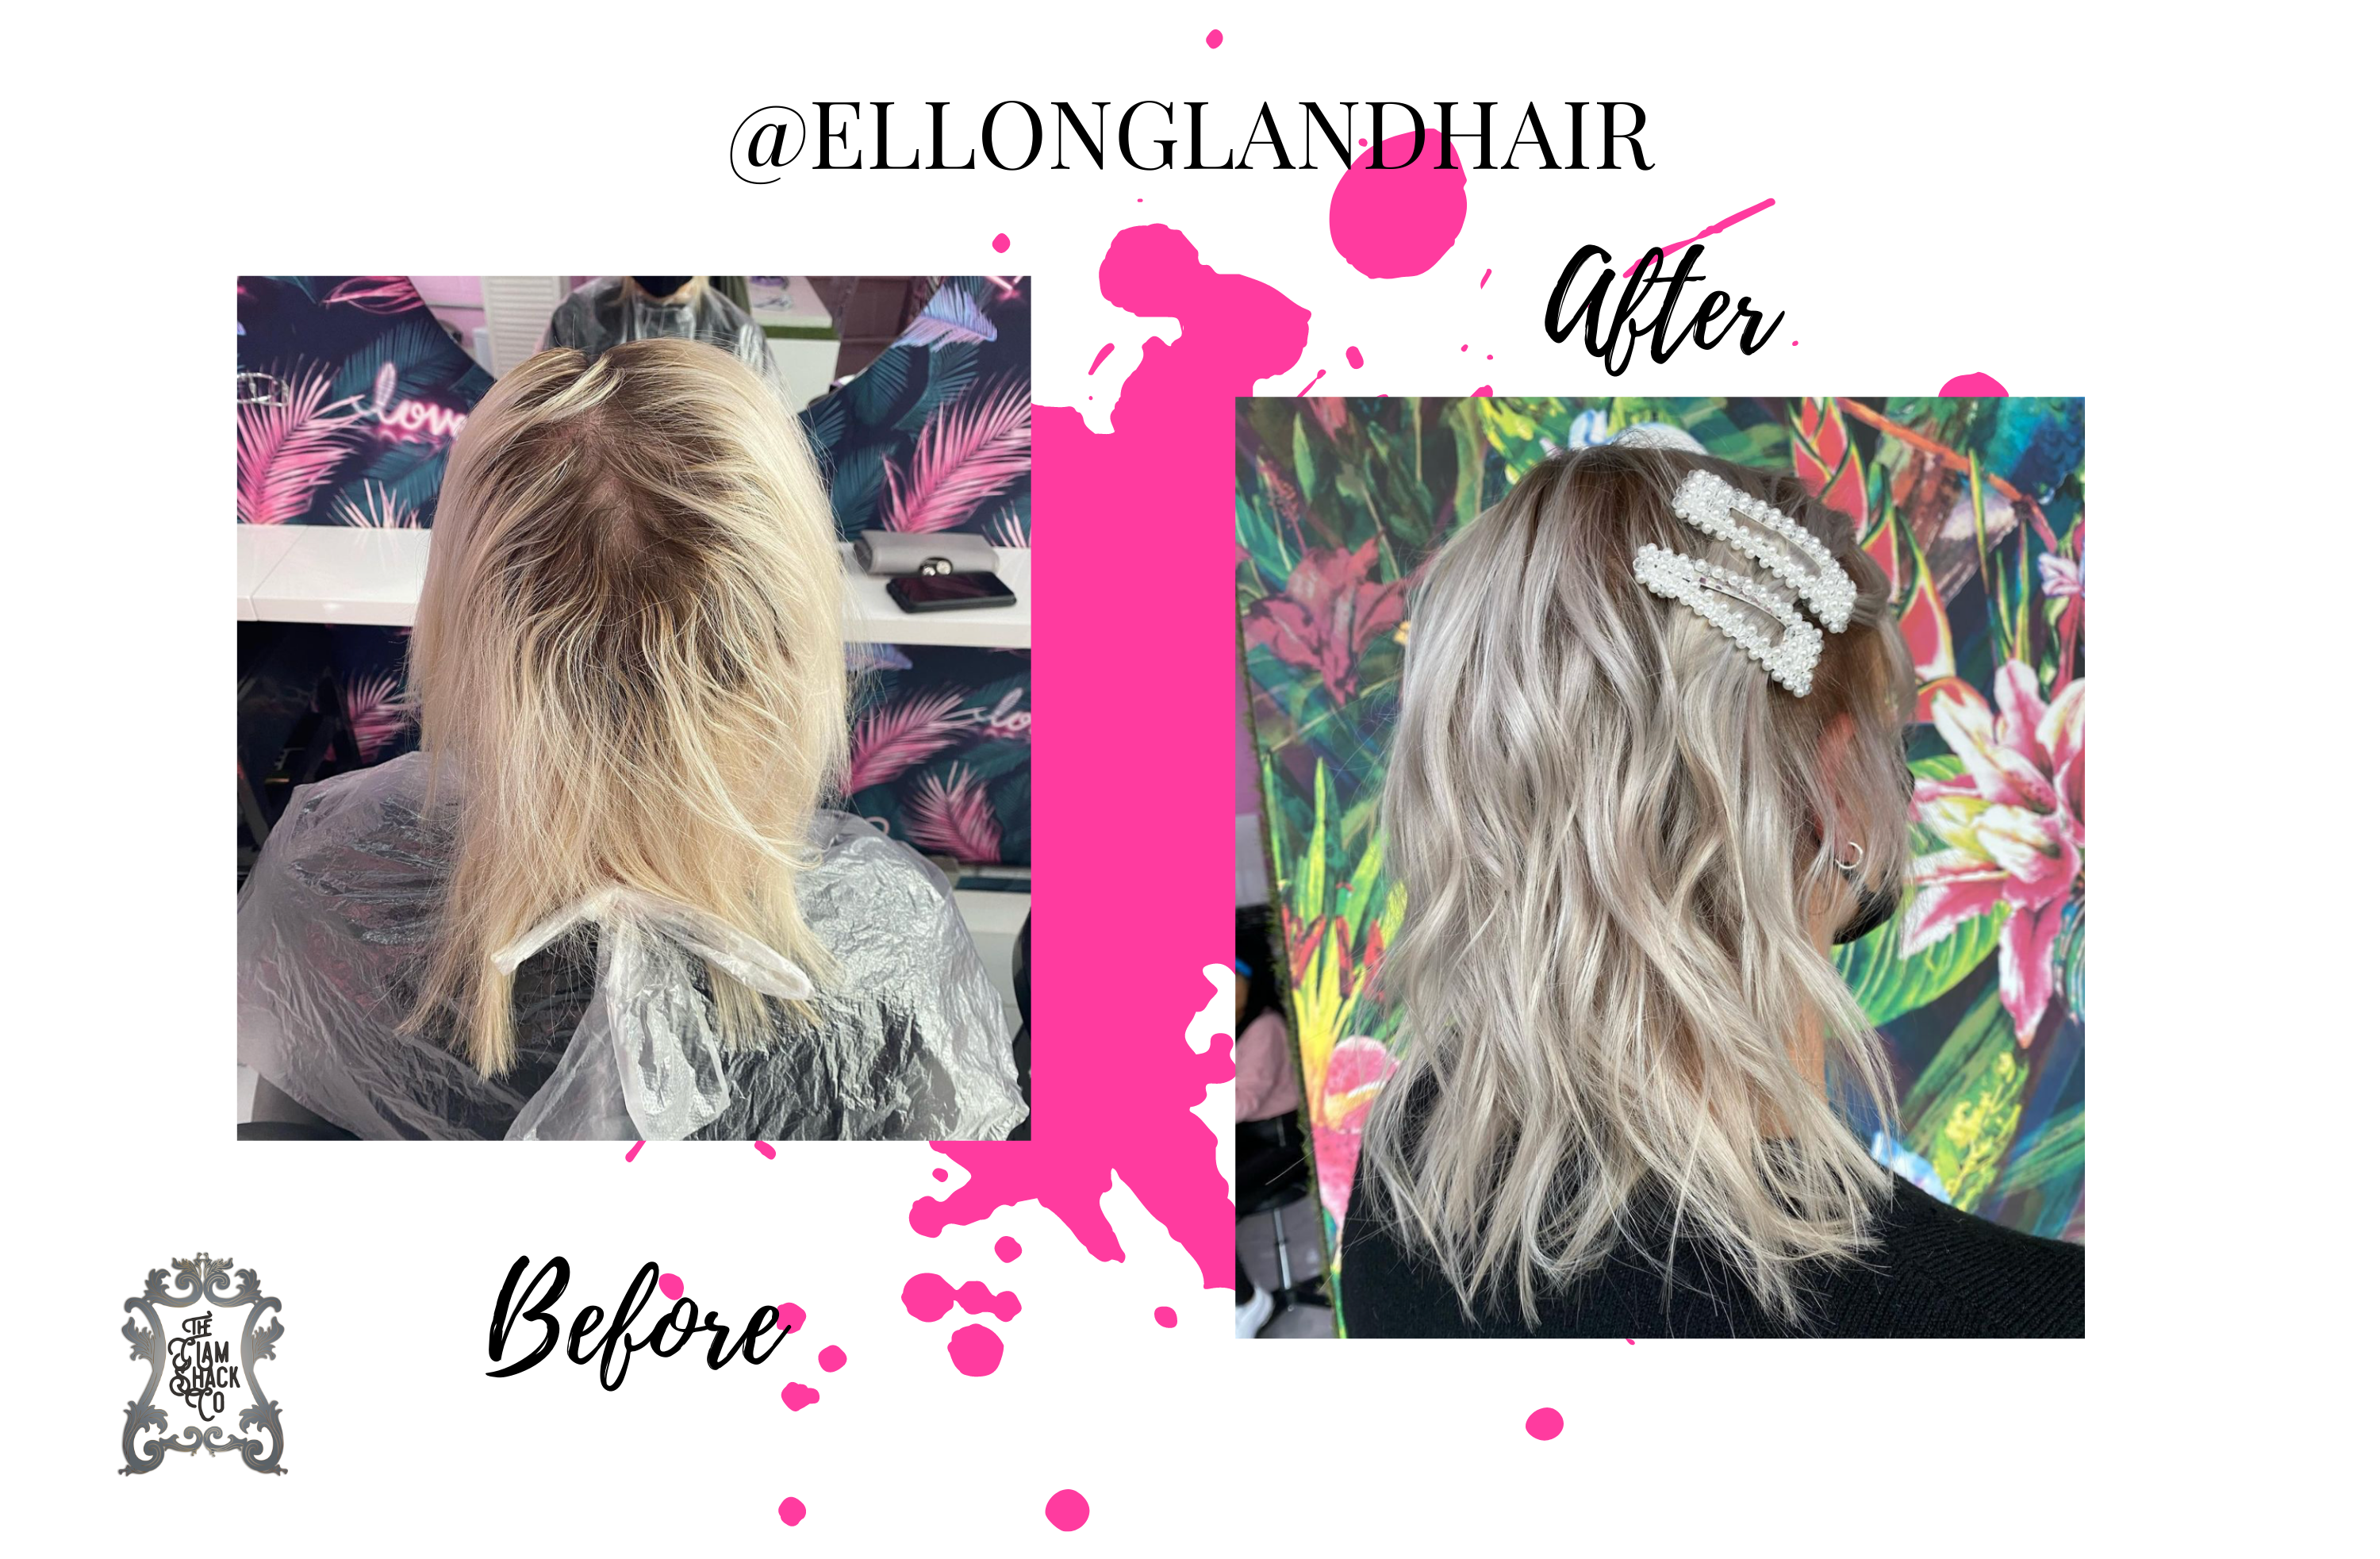 Before & After - Hair (11)